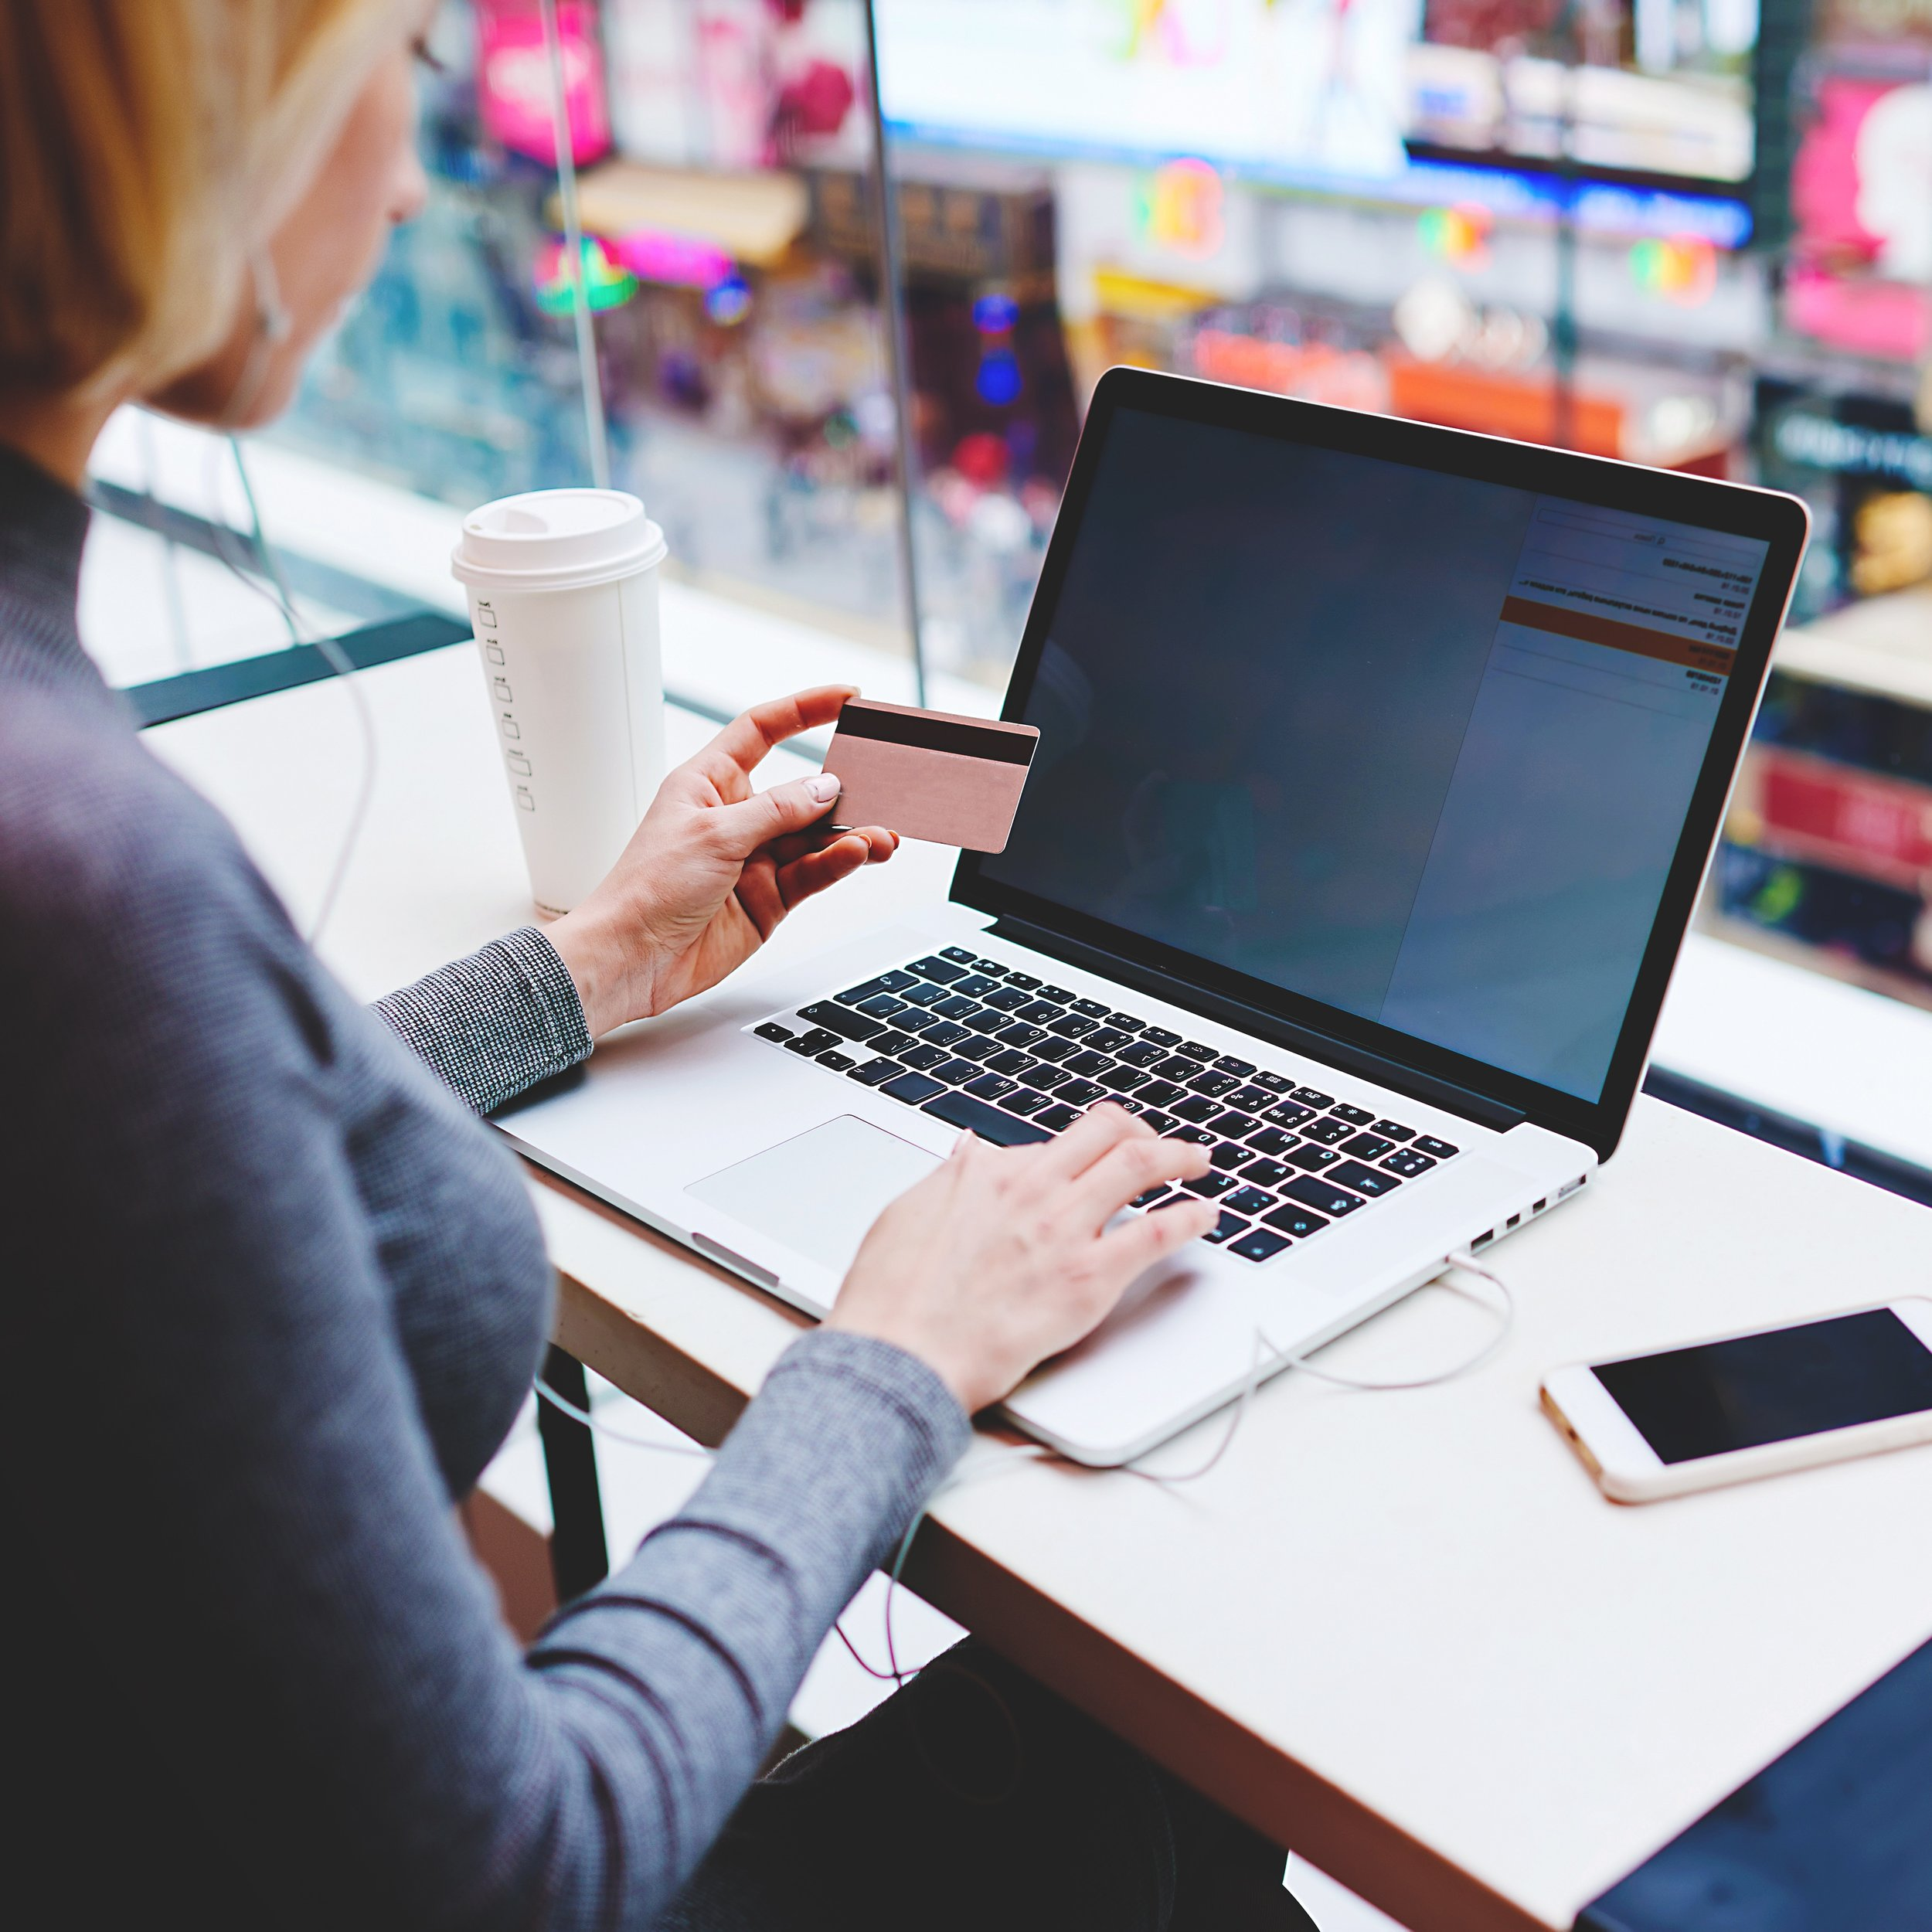 Removing Fraudulent Accounts From Your CreditReport - Learn more about the specific steps you need to take to remove accounts that are the result of identity theft from your credit report.